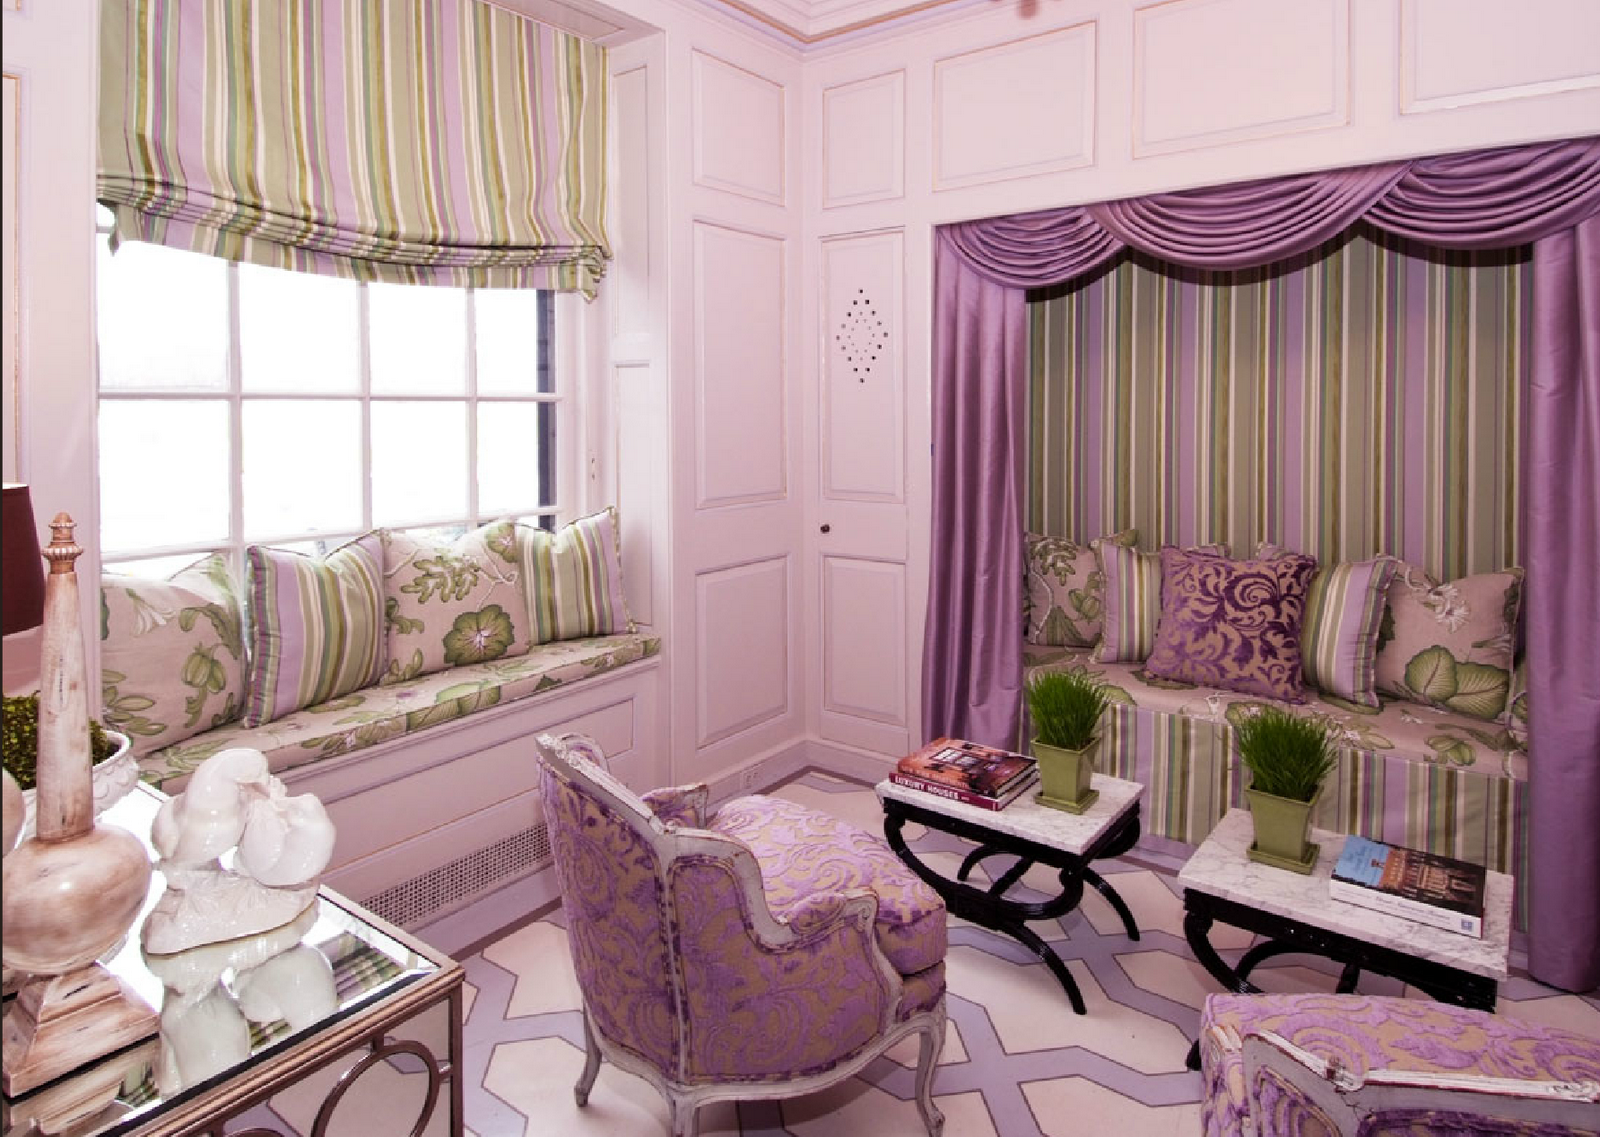 4 teen girls bedroom 7 interior design ideas for Teen girls bedroom